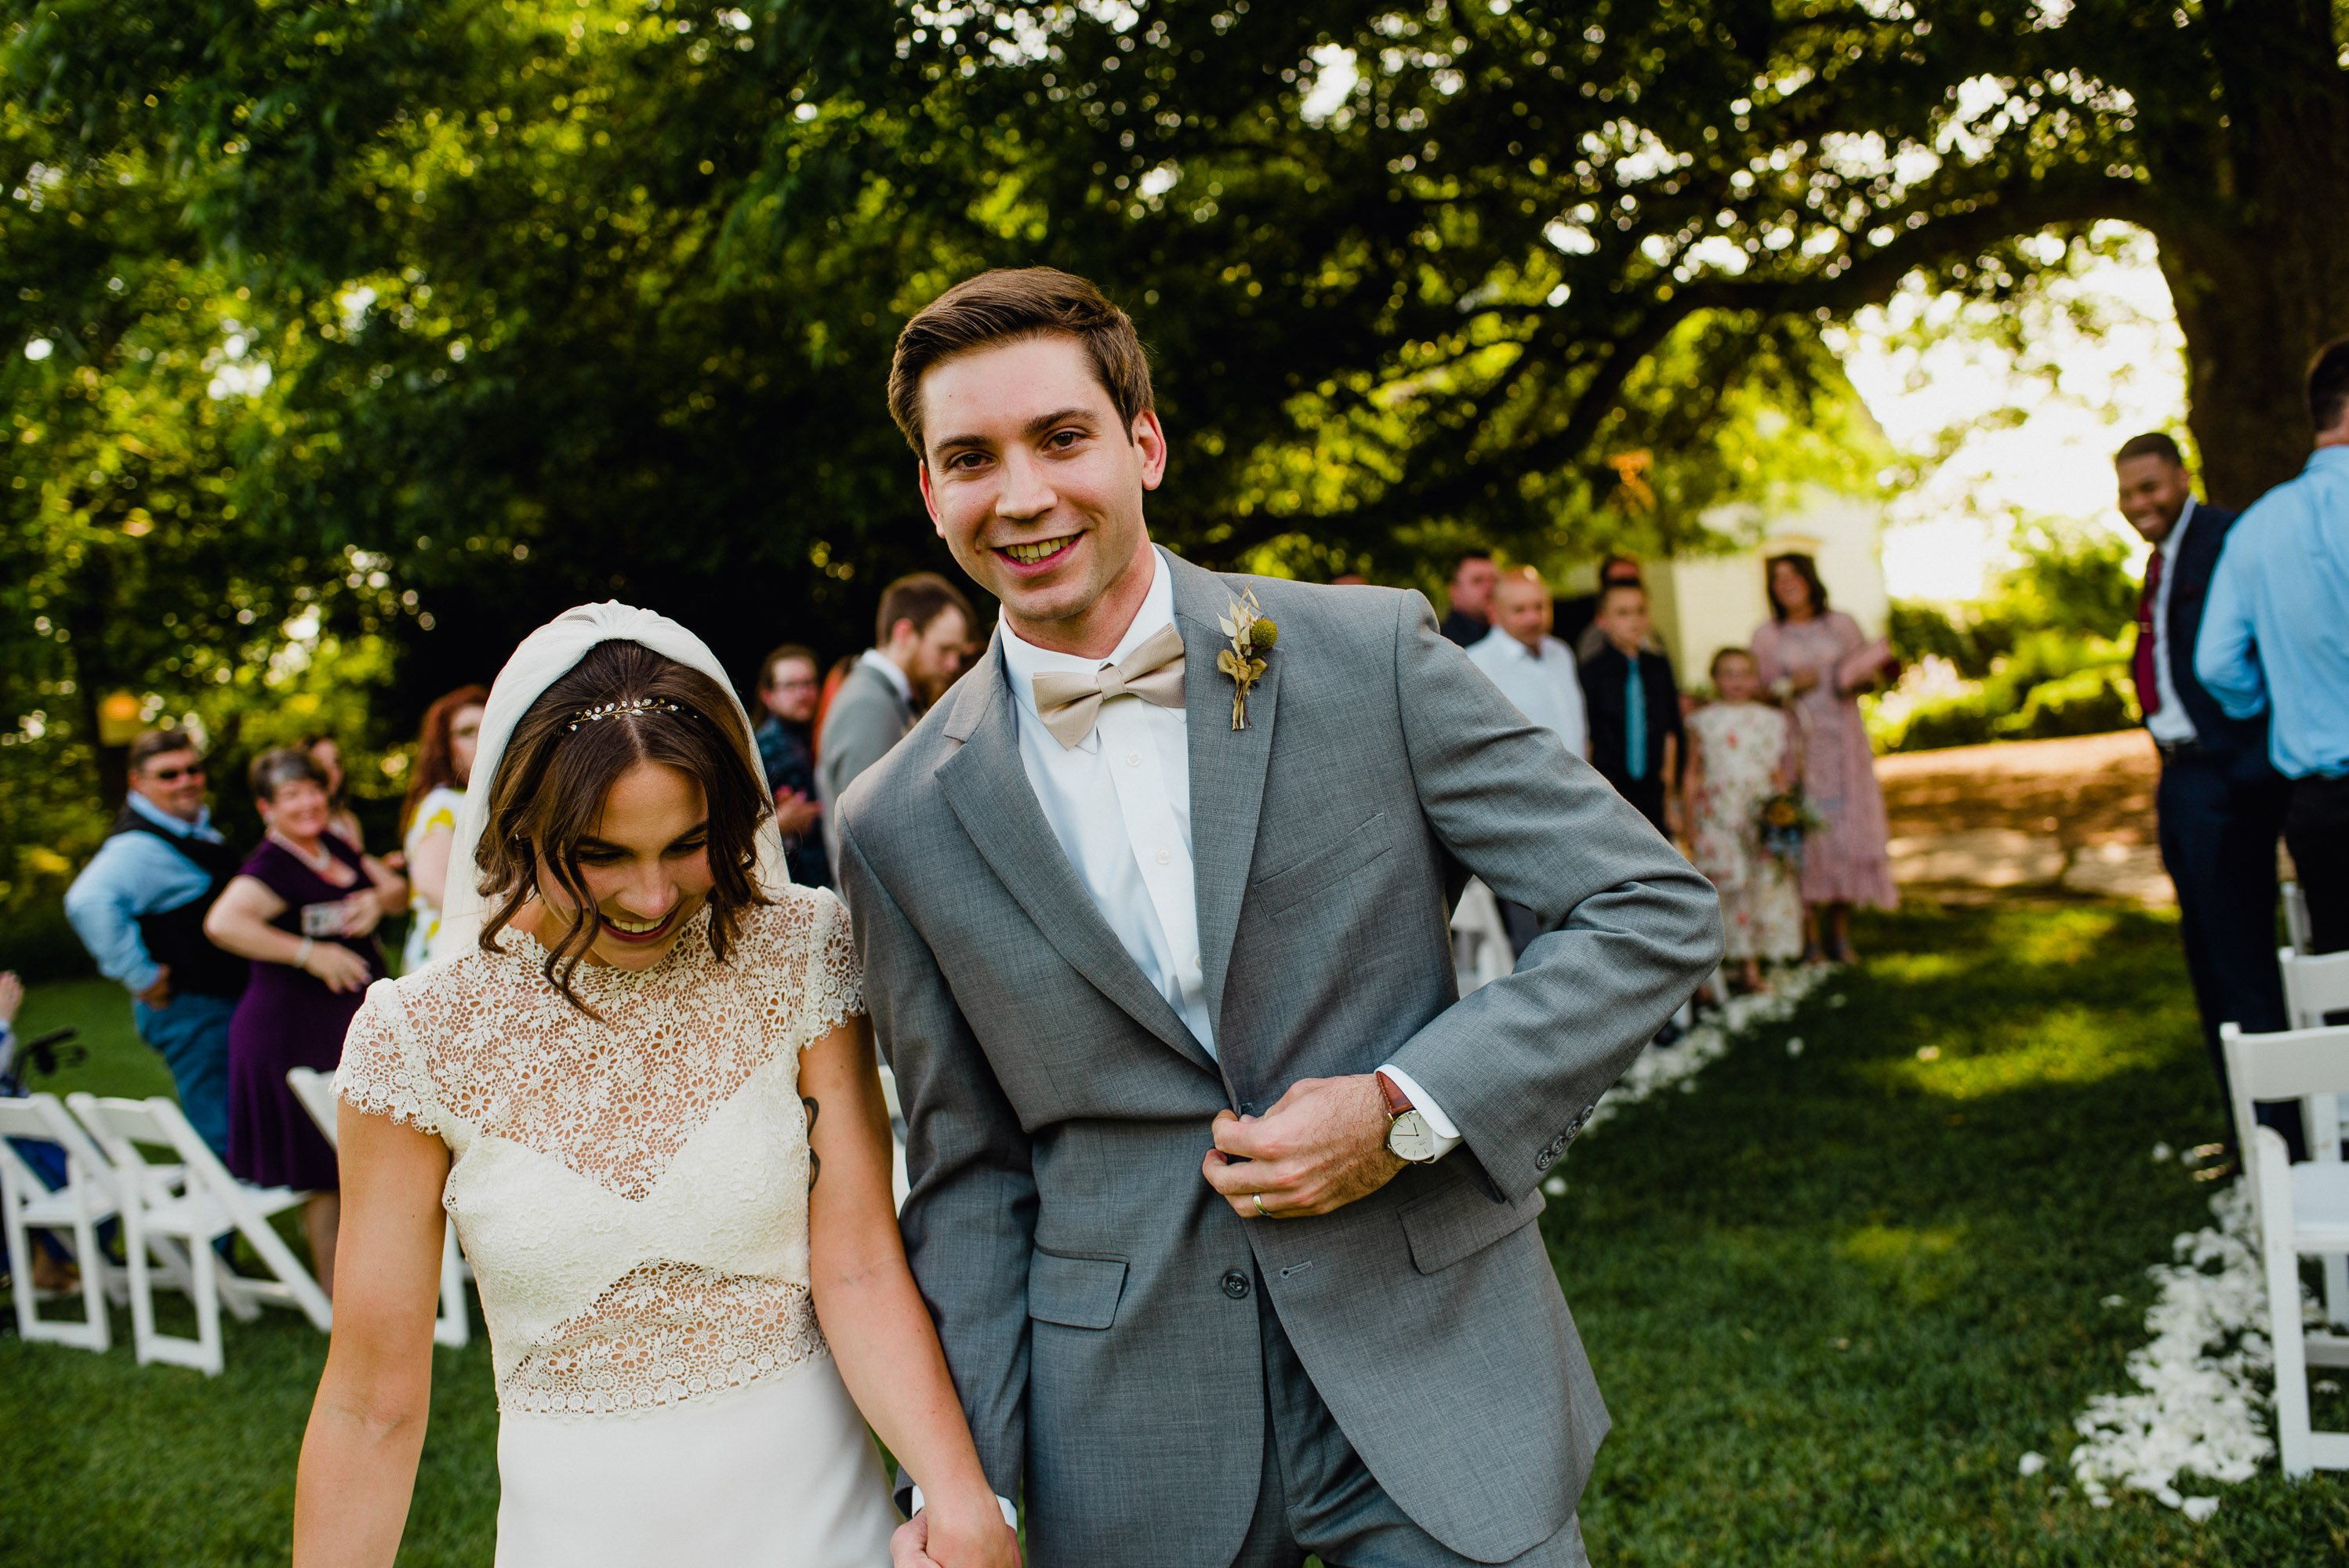 candid wedding photography in austin texas